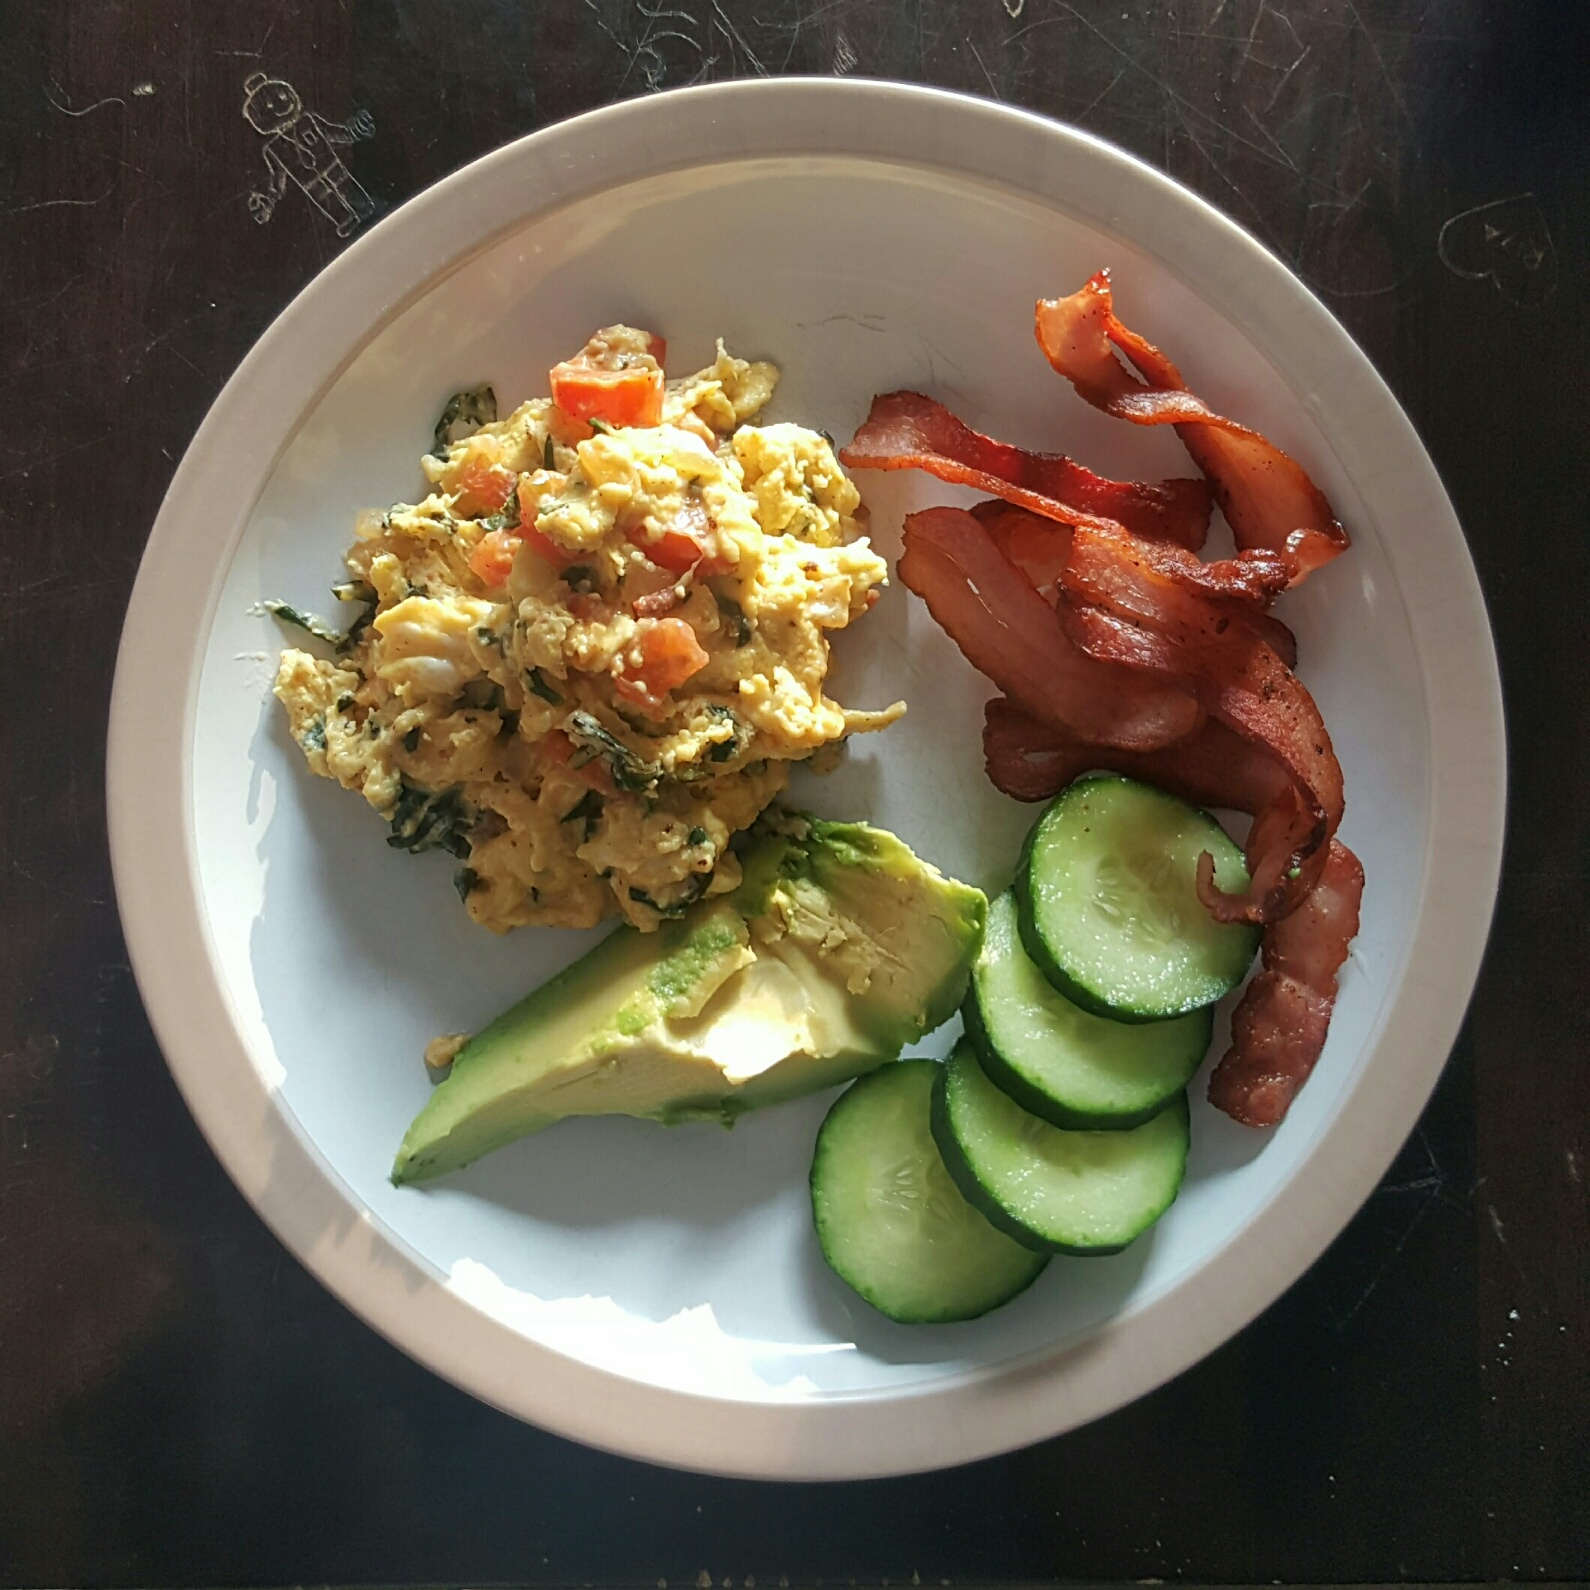 Spinach, tomato and onion scrambled eggs with bacon, cucumber and avo